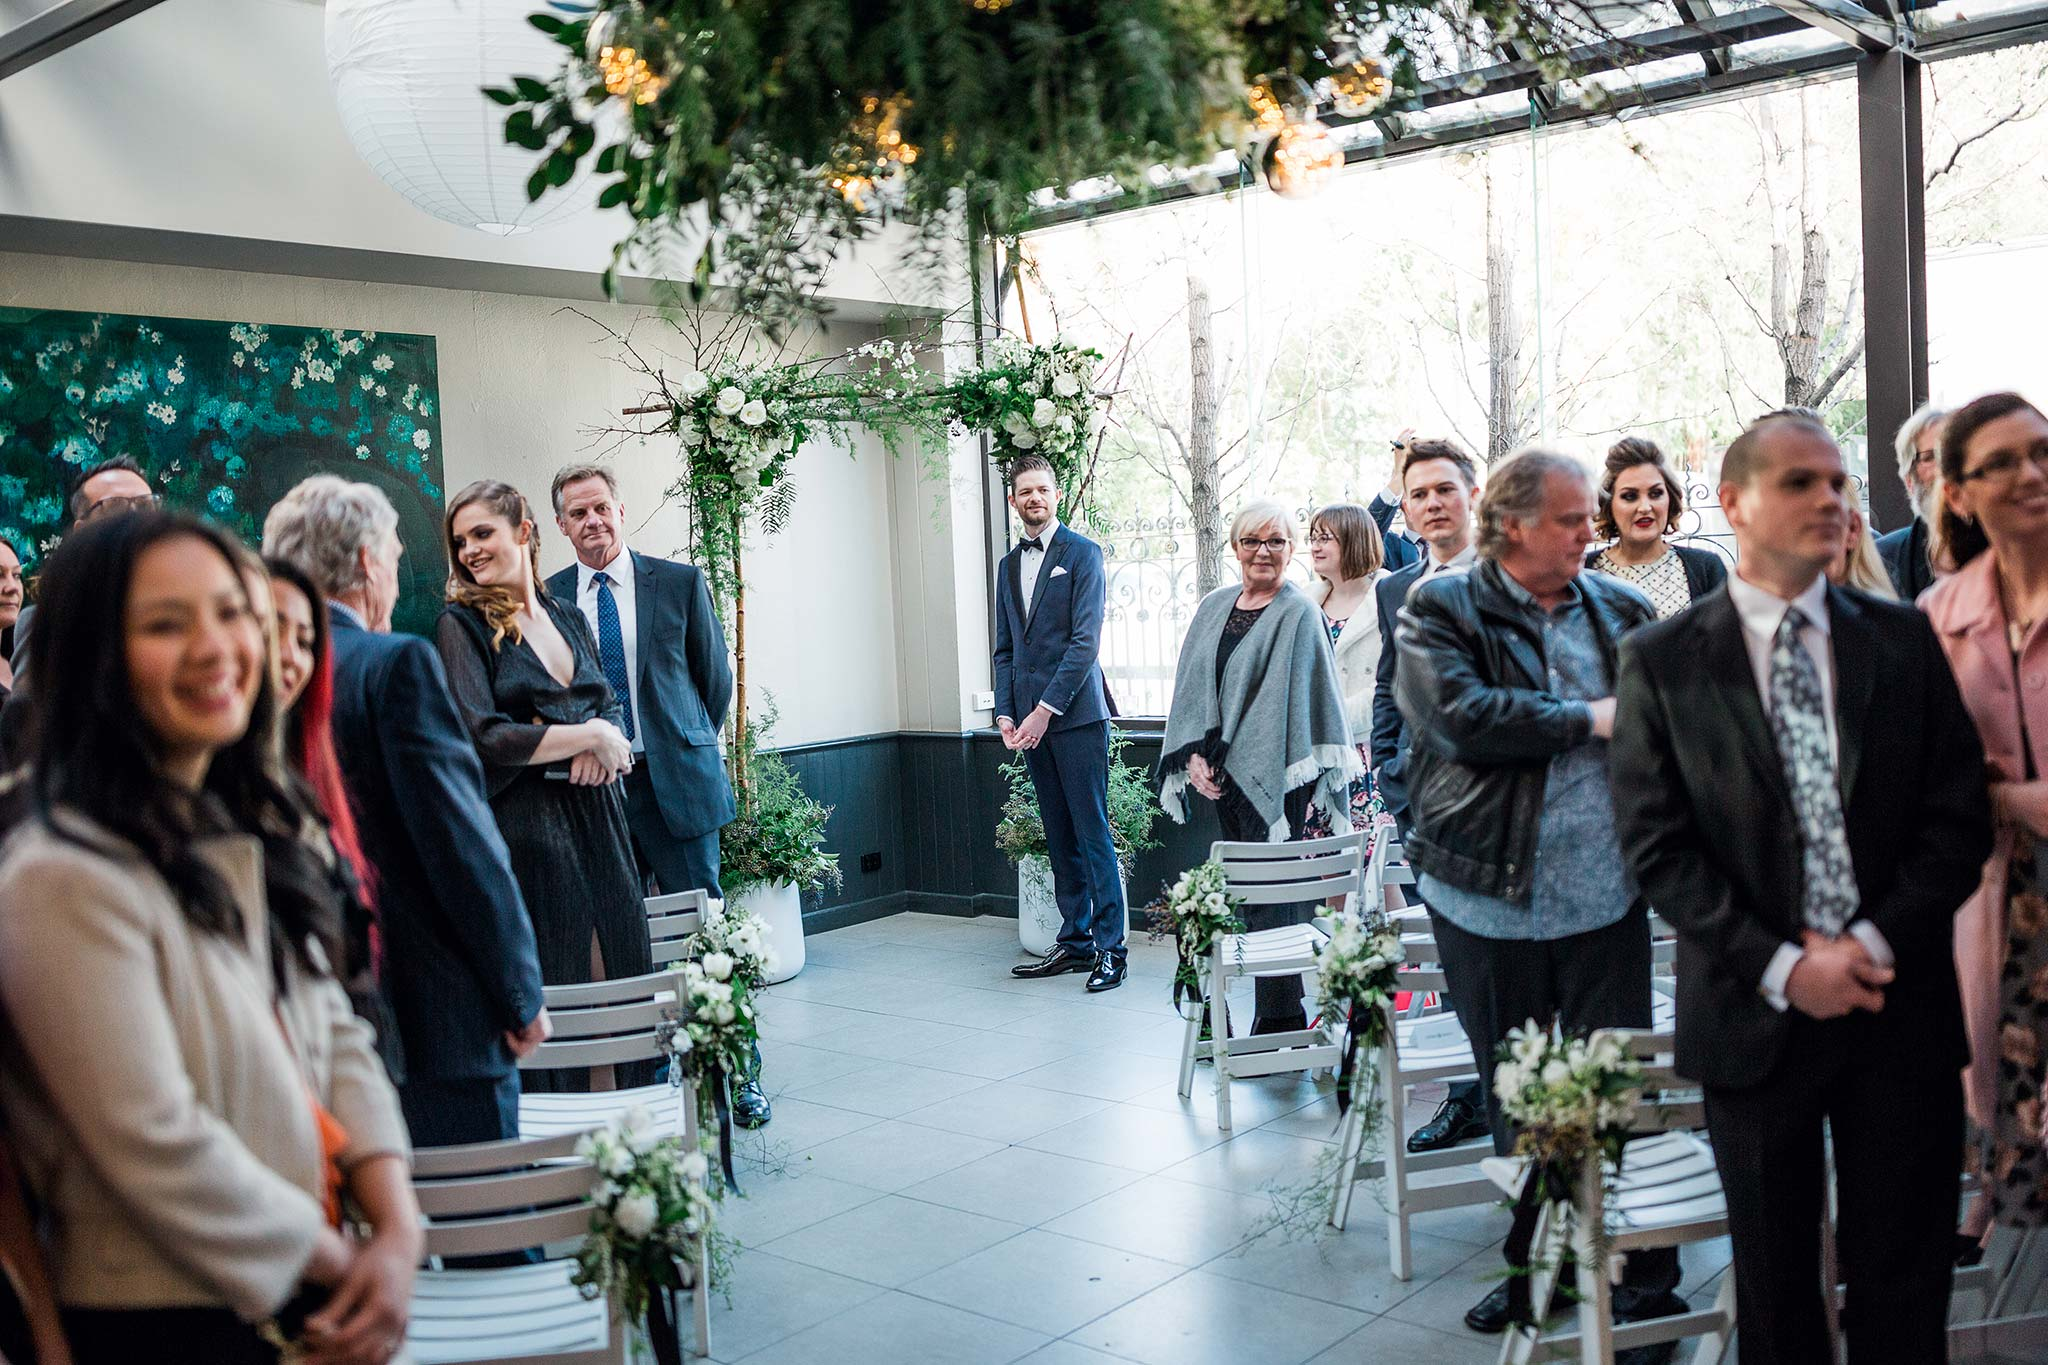 melbourne-fitzroy-st-andrews-conservatory-pumphouse-wedding-venue-ceremony-groom-altar